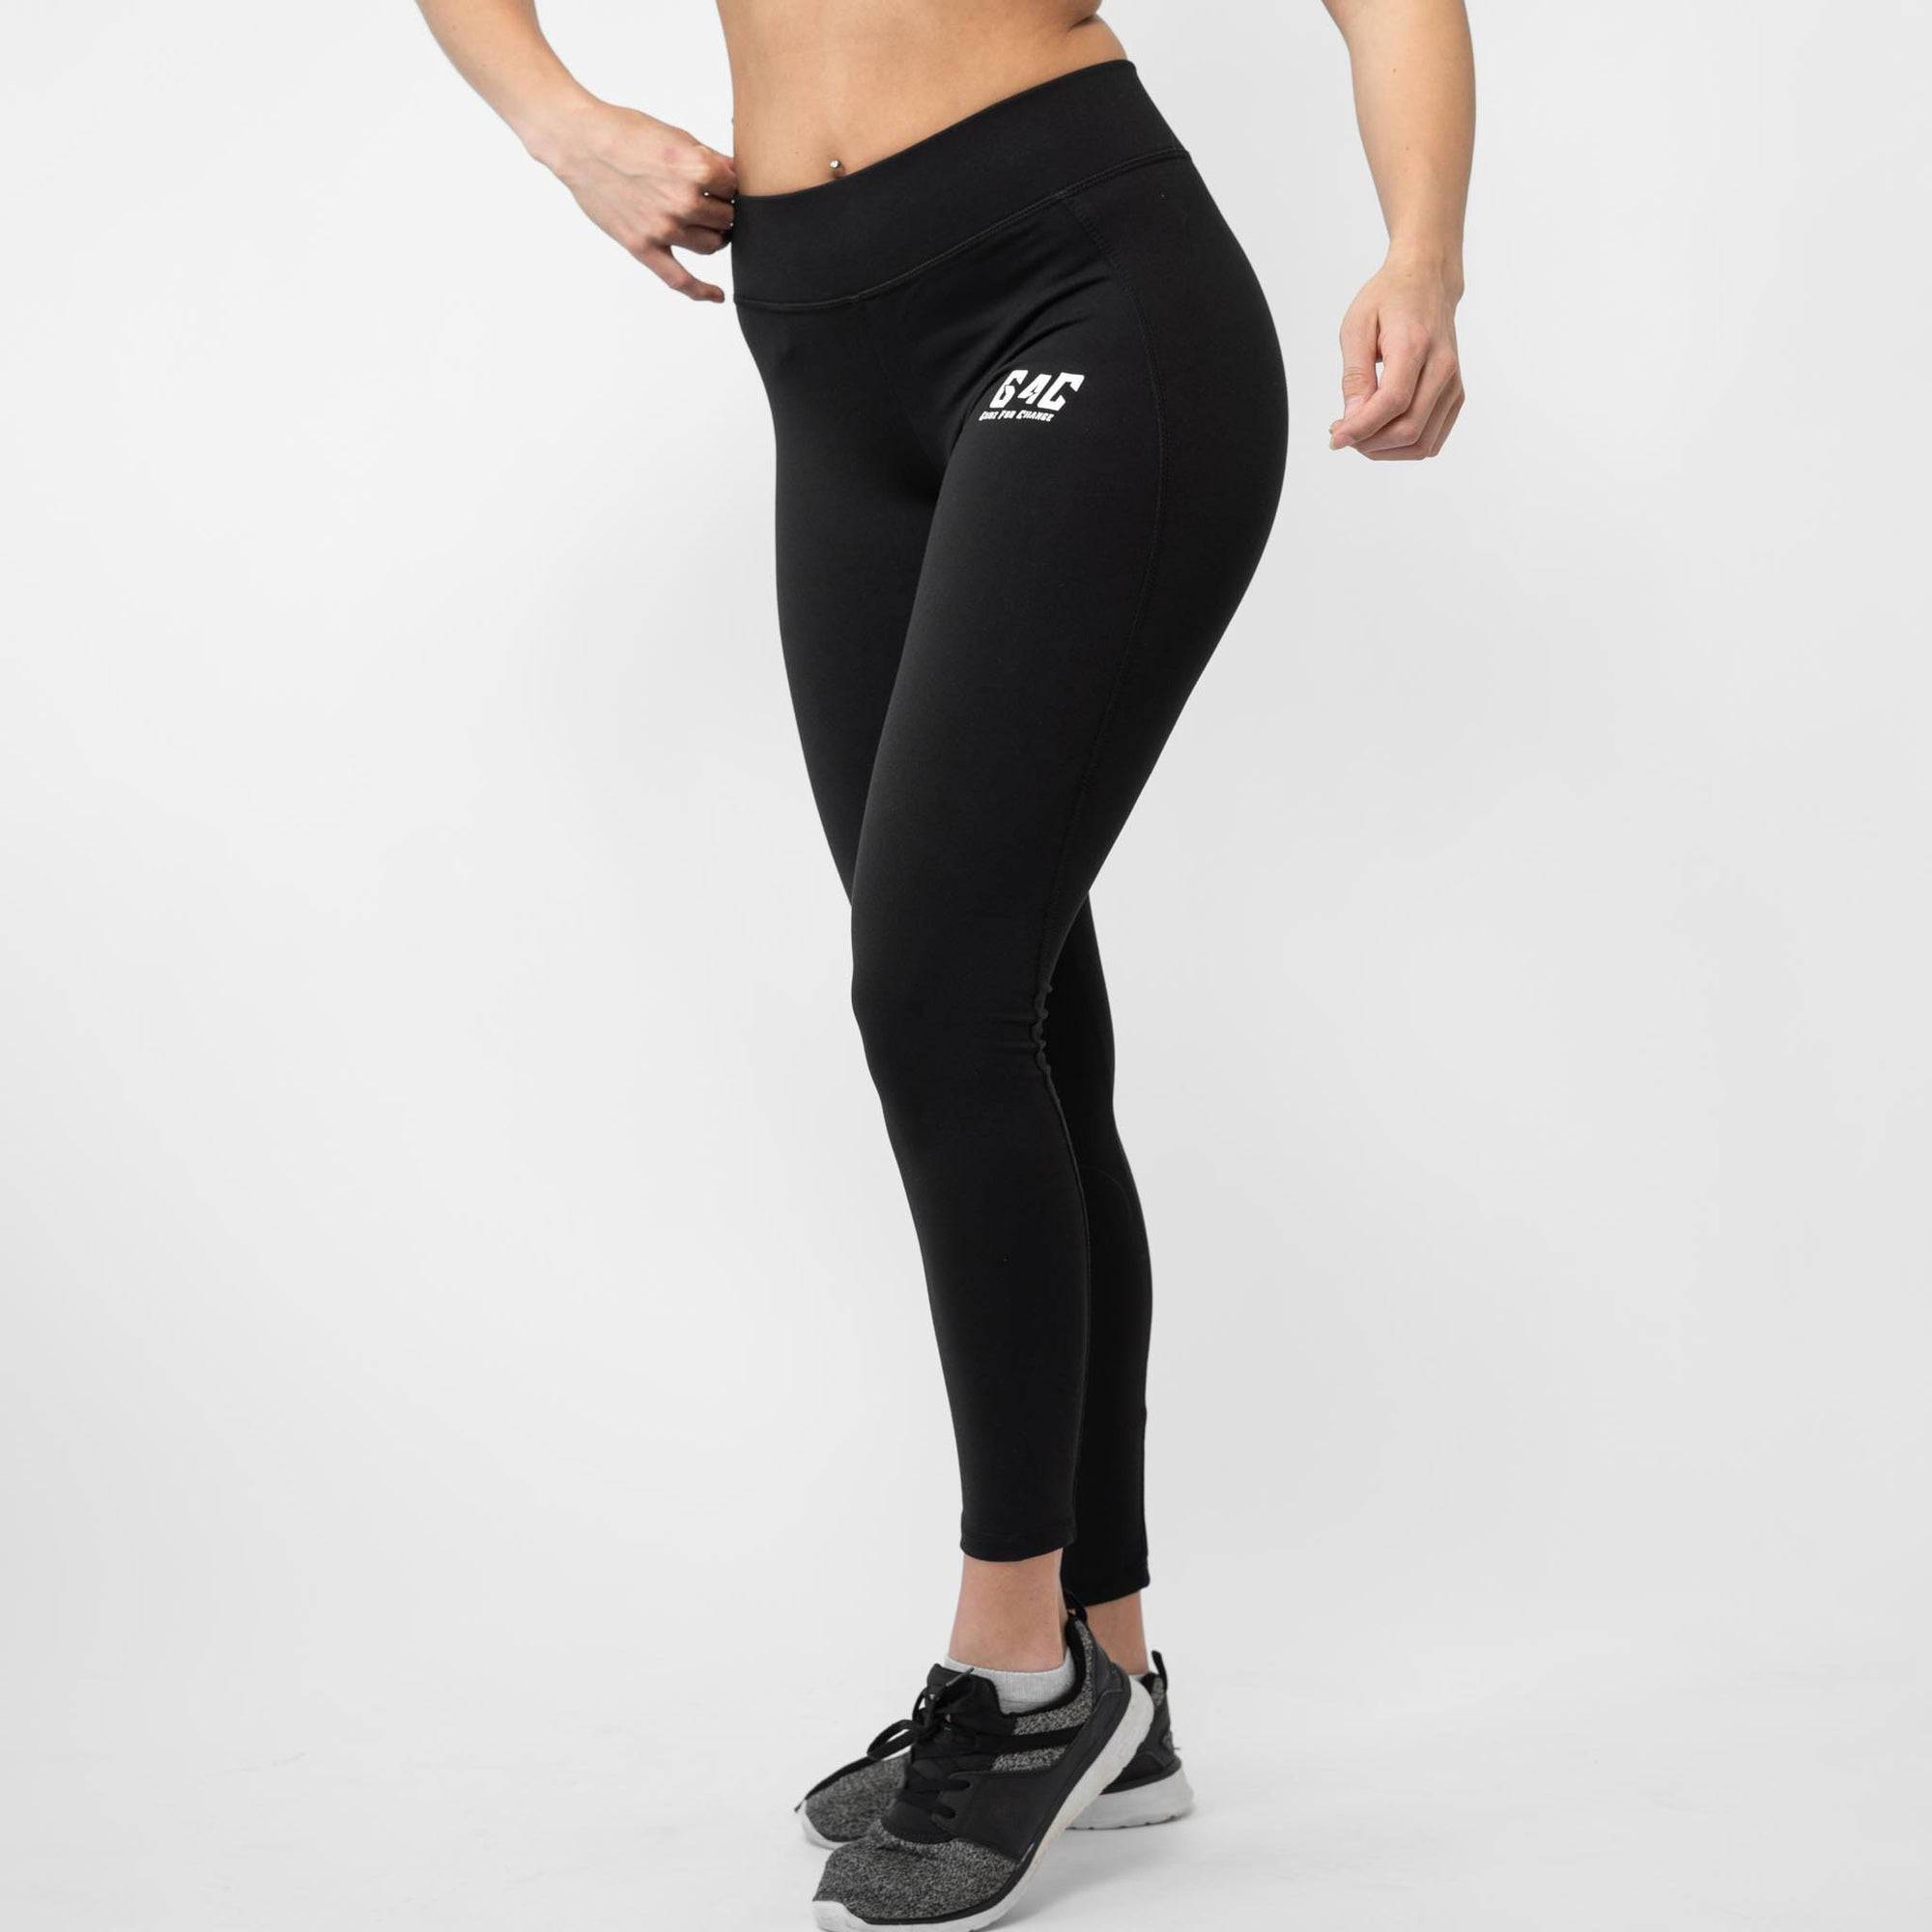 Gainz4Change Highwaist Leggings Athletia black - Gainz4Change